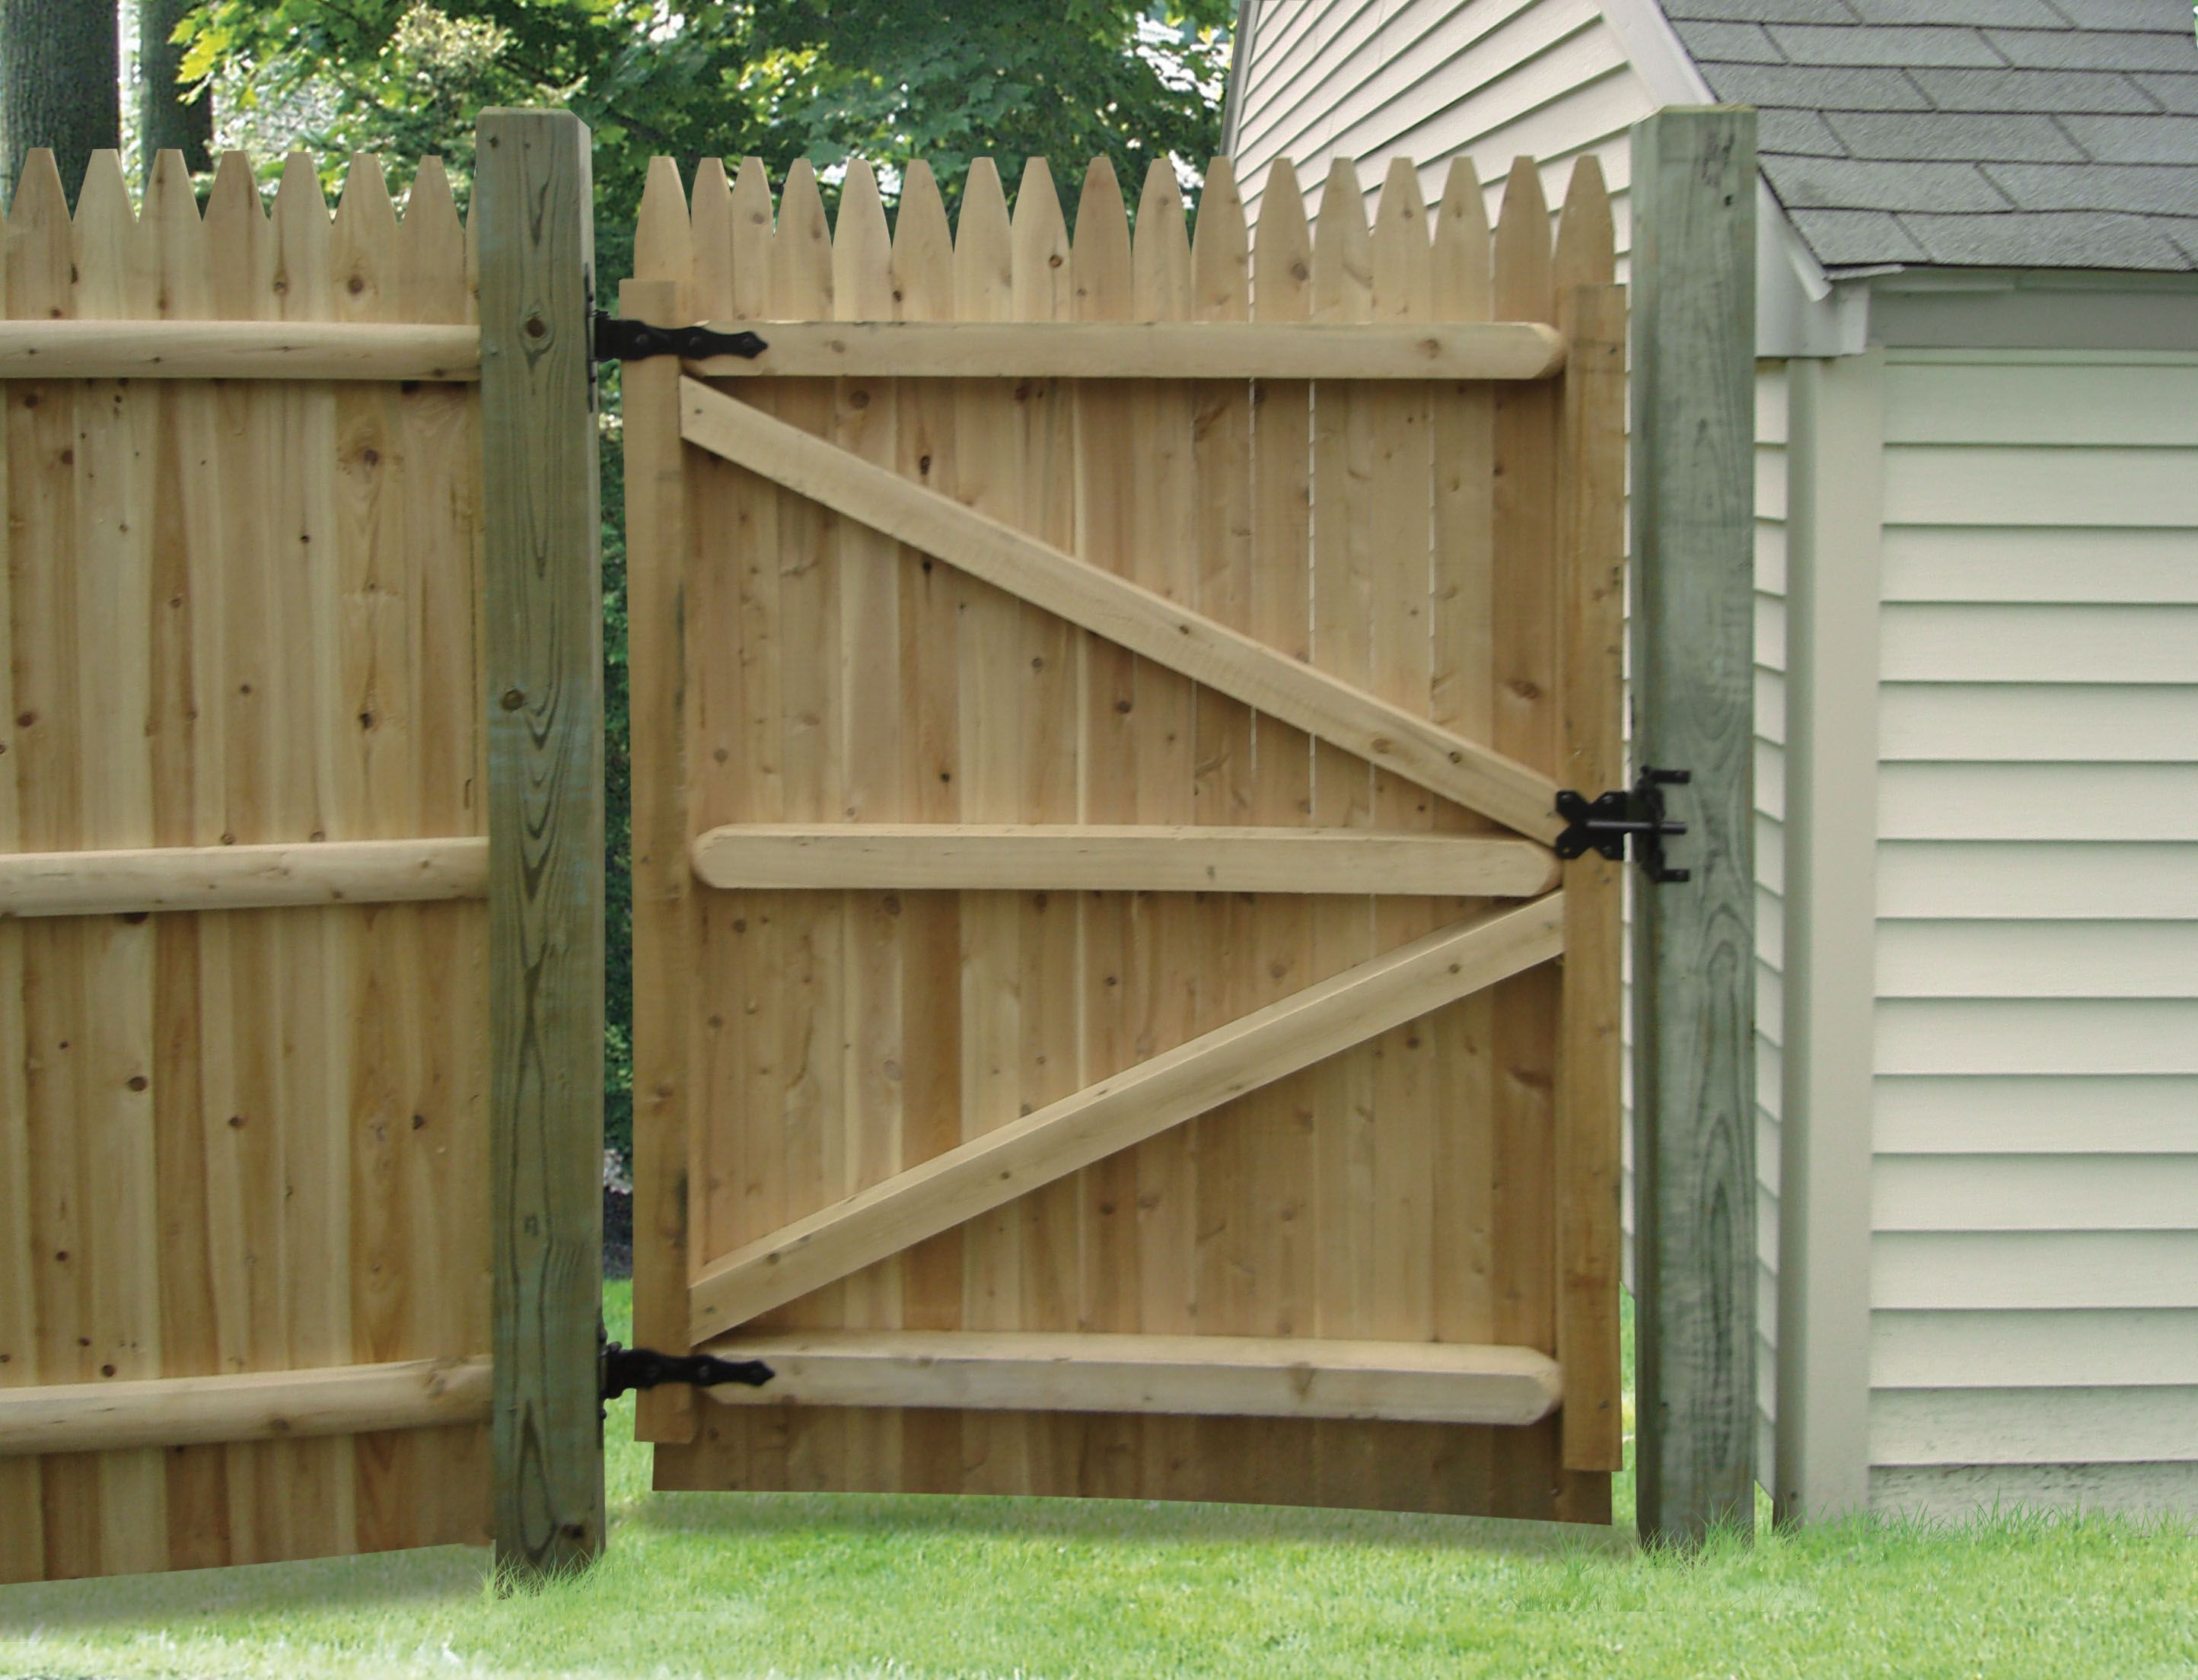 wooden fence gates designs wood fence doors interior doors fences pinterest gate. Black Bedroom Furniture Sets. Home Design Ideas